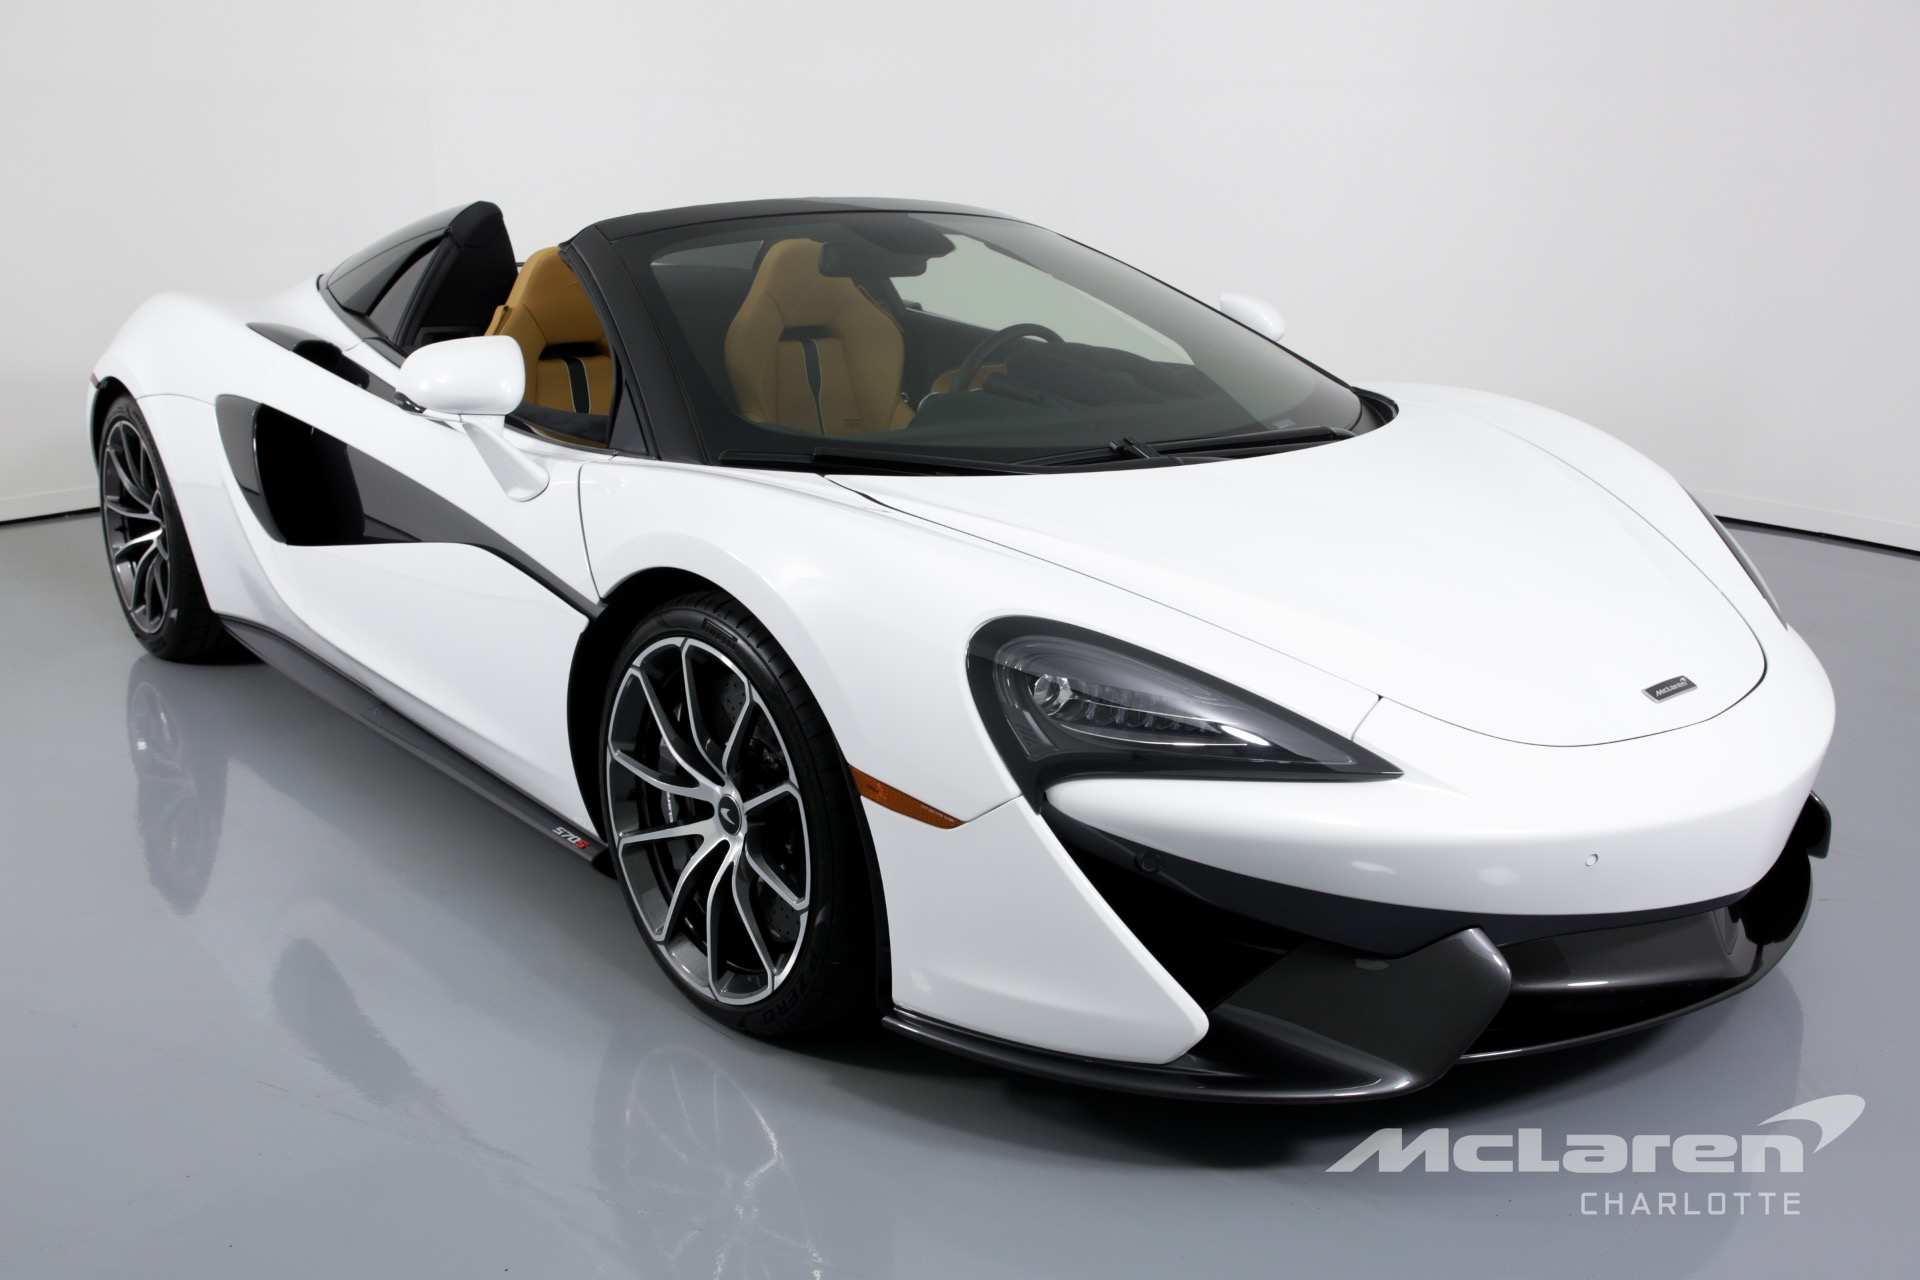 49 A 2019 Mclaren 570S Spider Price And Release Date